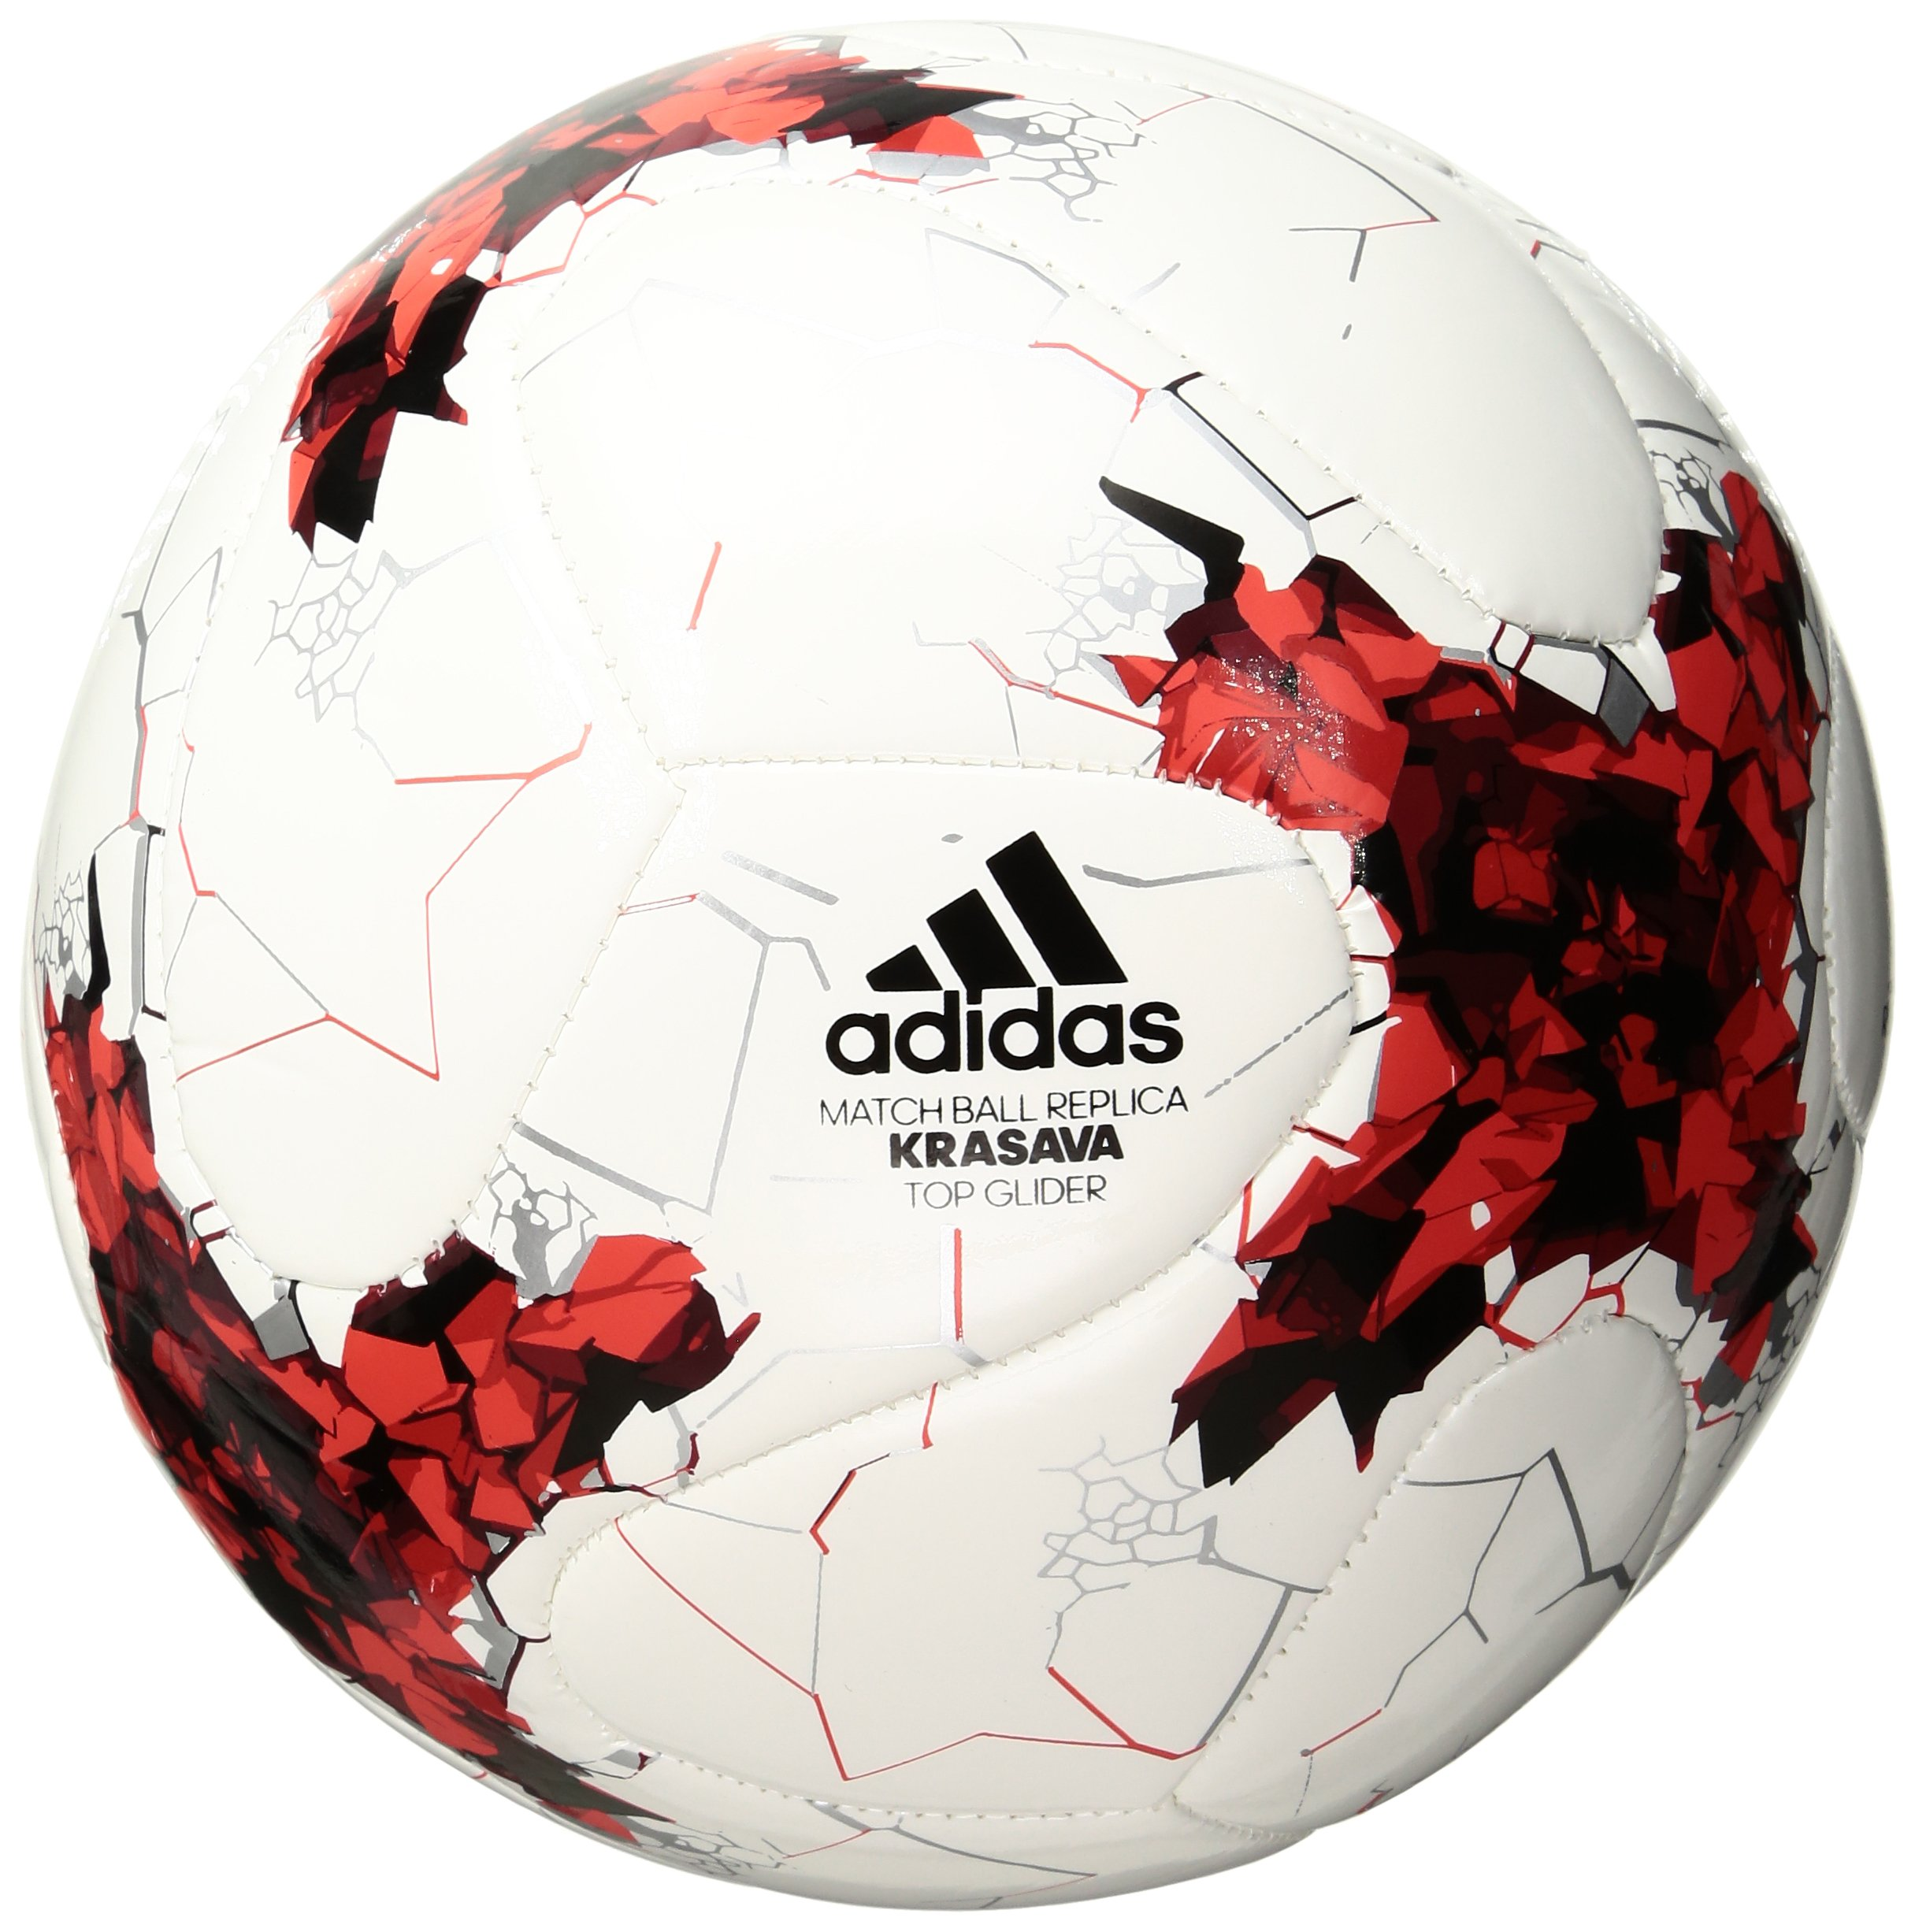 Viajero asentamiento superávit  adidas Performance Confederations Cup Top Replique Soccer Ball, Unisex,  S1706LSB001TREP, White/Red/Power Red/Clear Grey, Size 5: Amazon.com.au:  Sports, Fitness & Outdoors